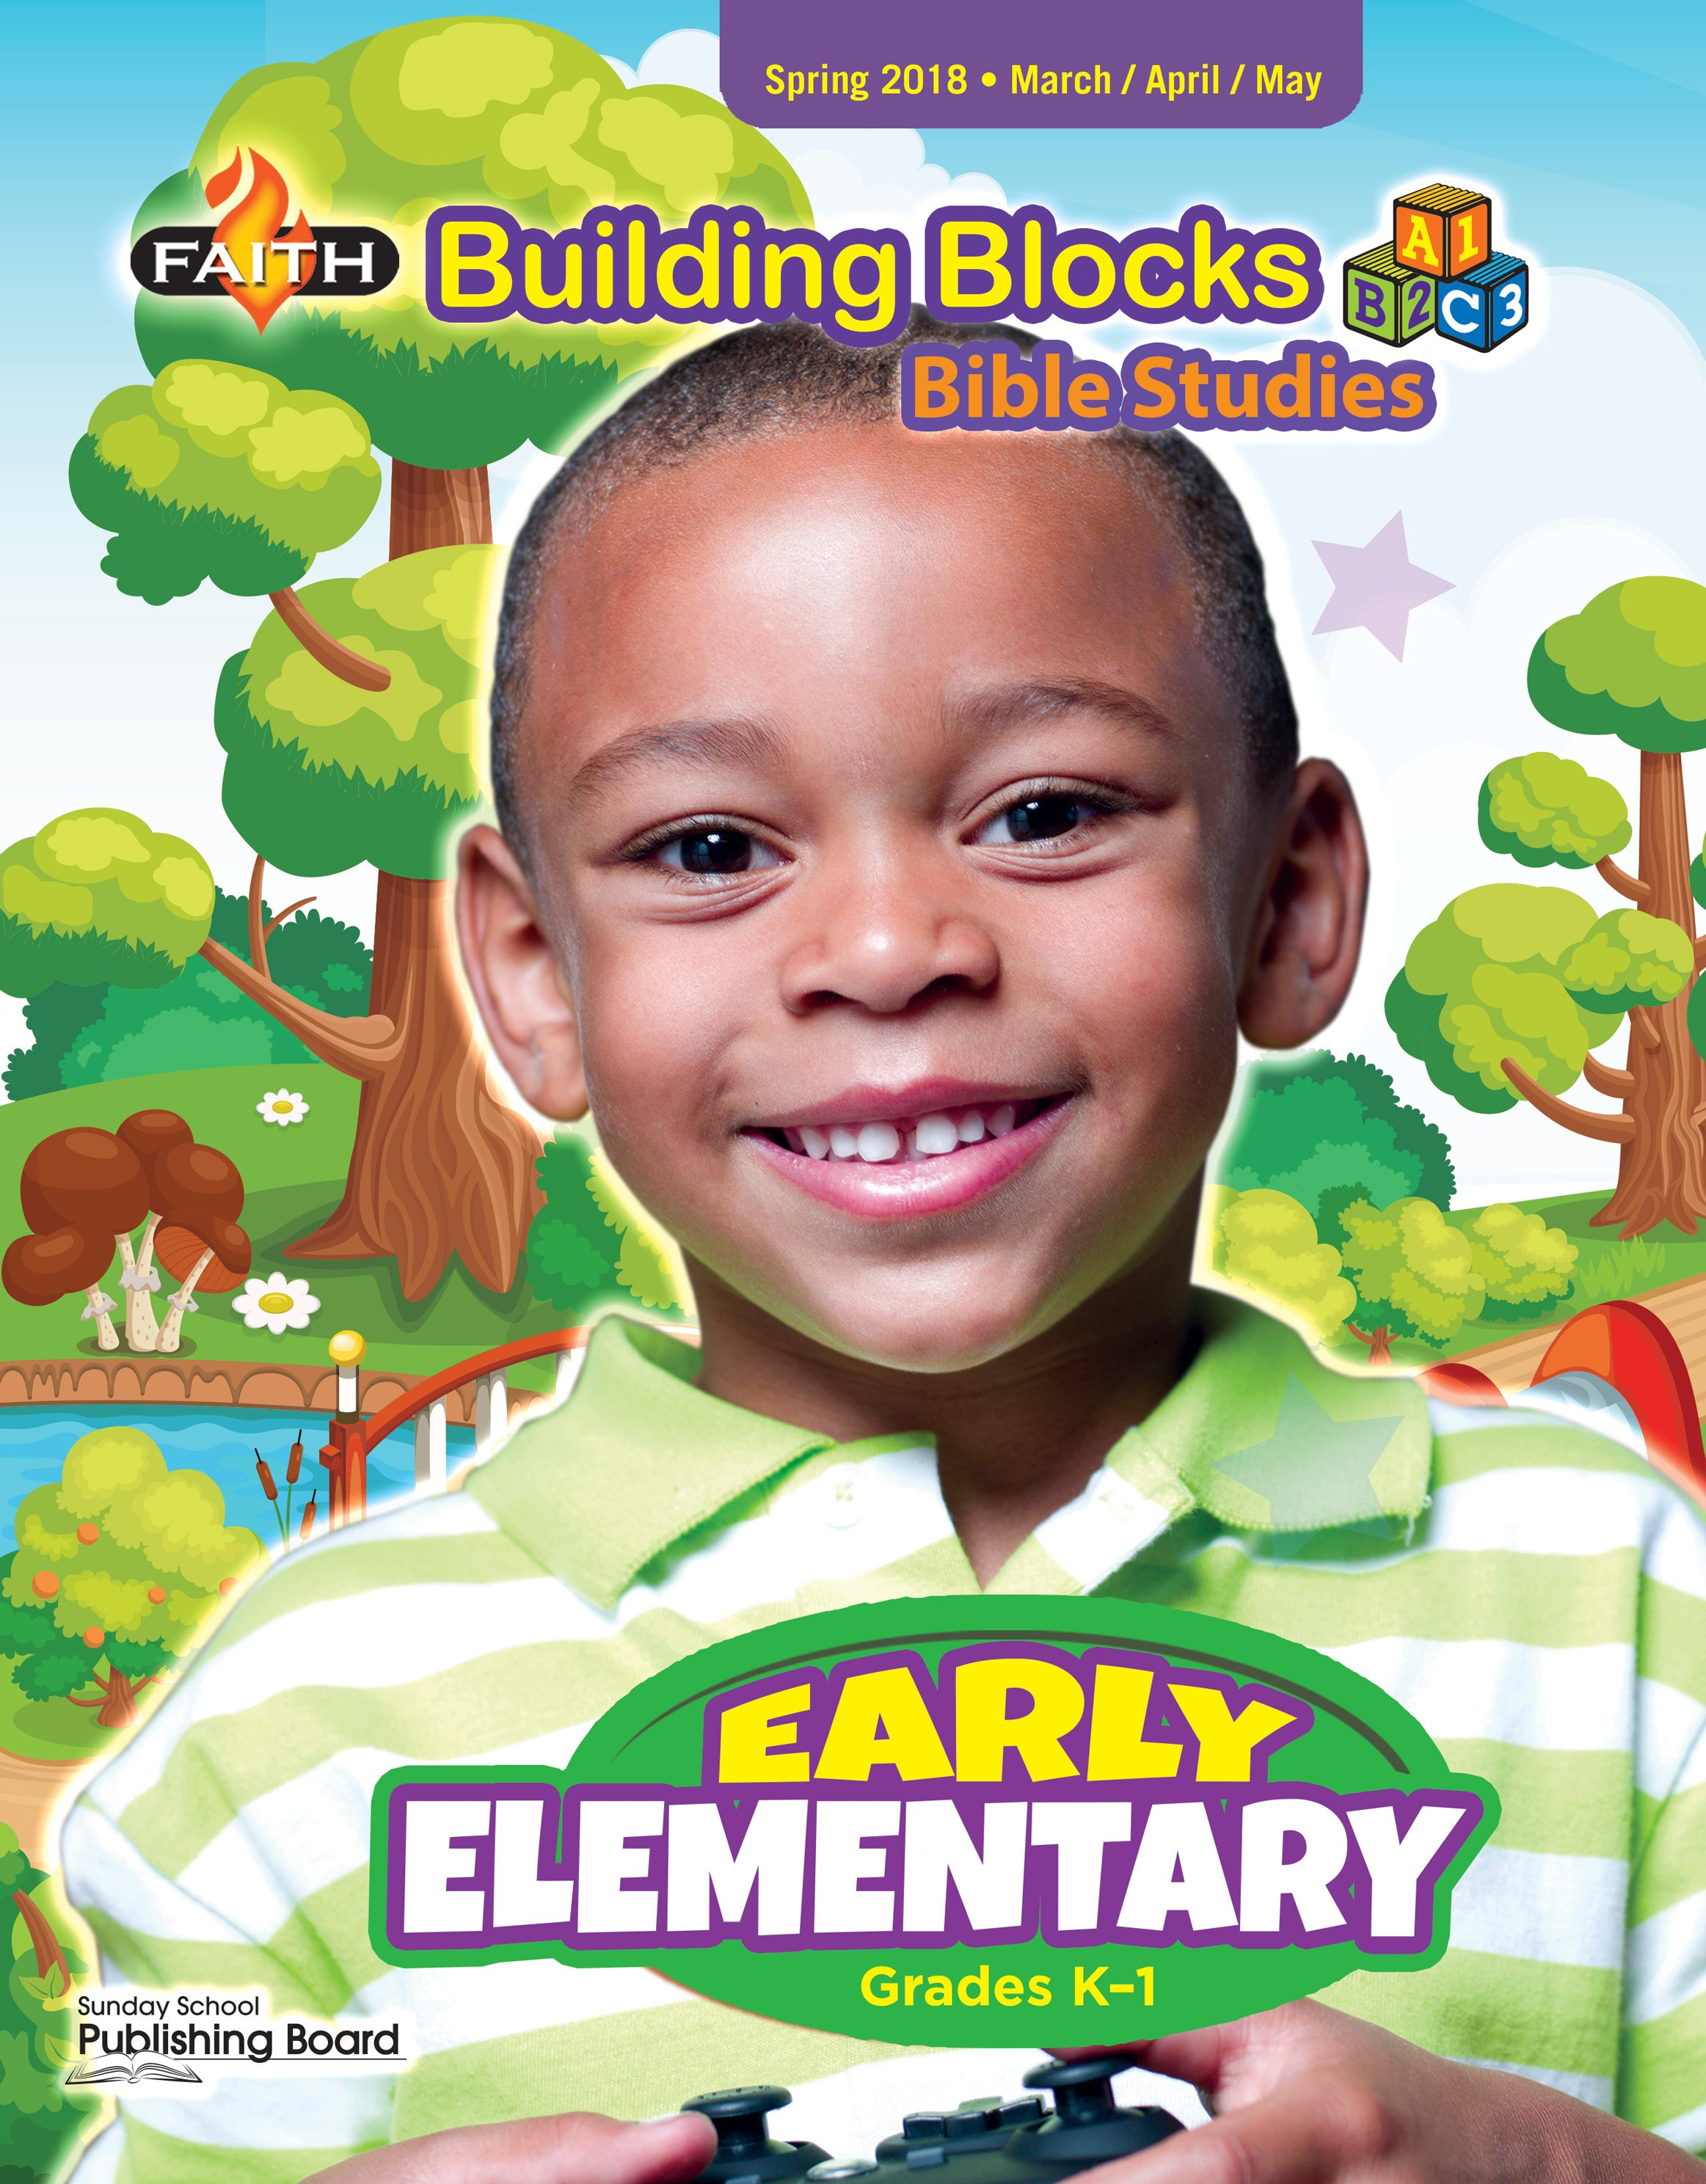 Faith Building Blocks Bible Studies, Early Elementary for Grades K-1 (Spring 2018)-Digital Edition